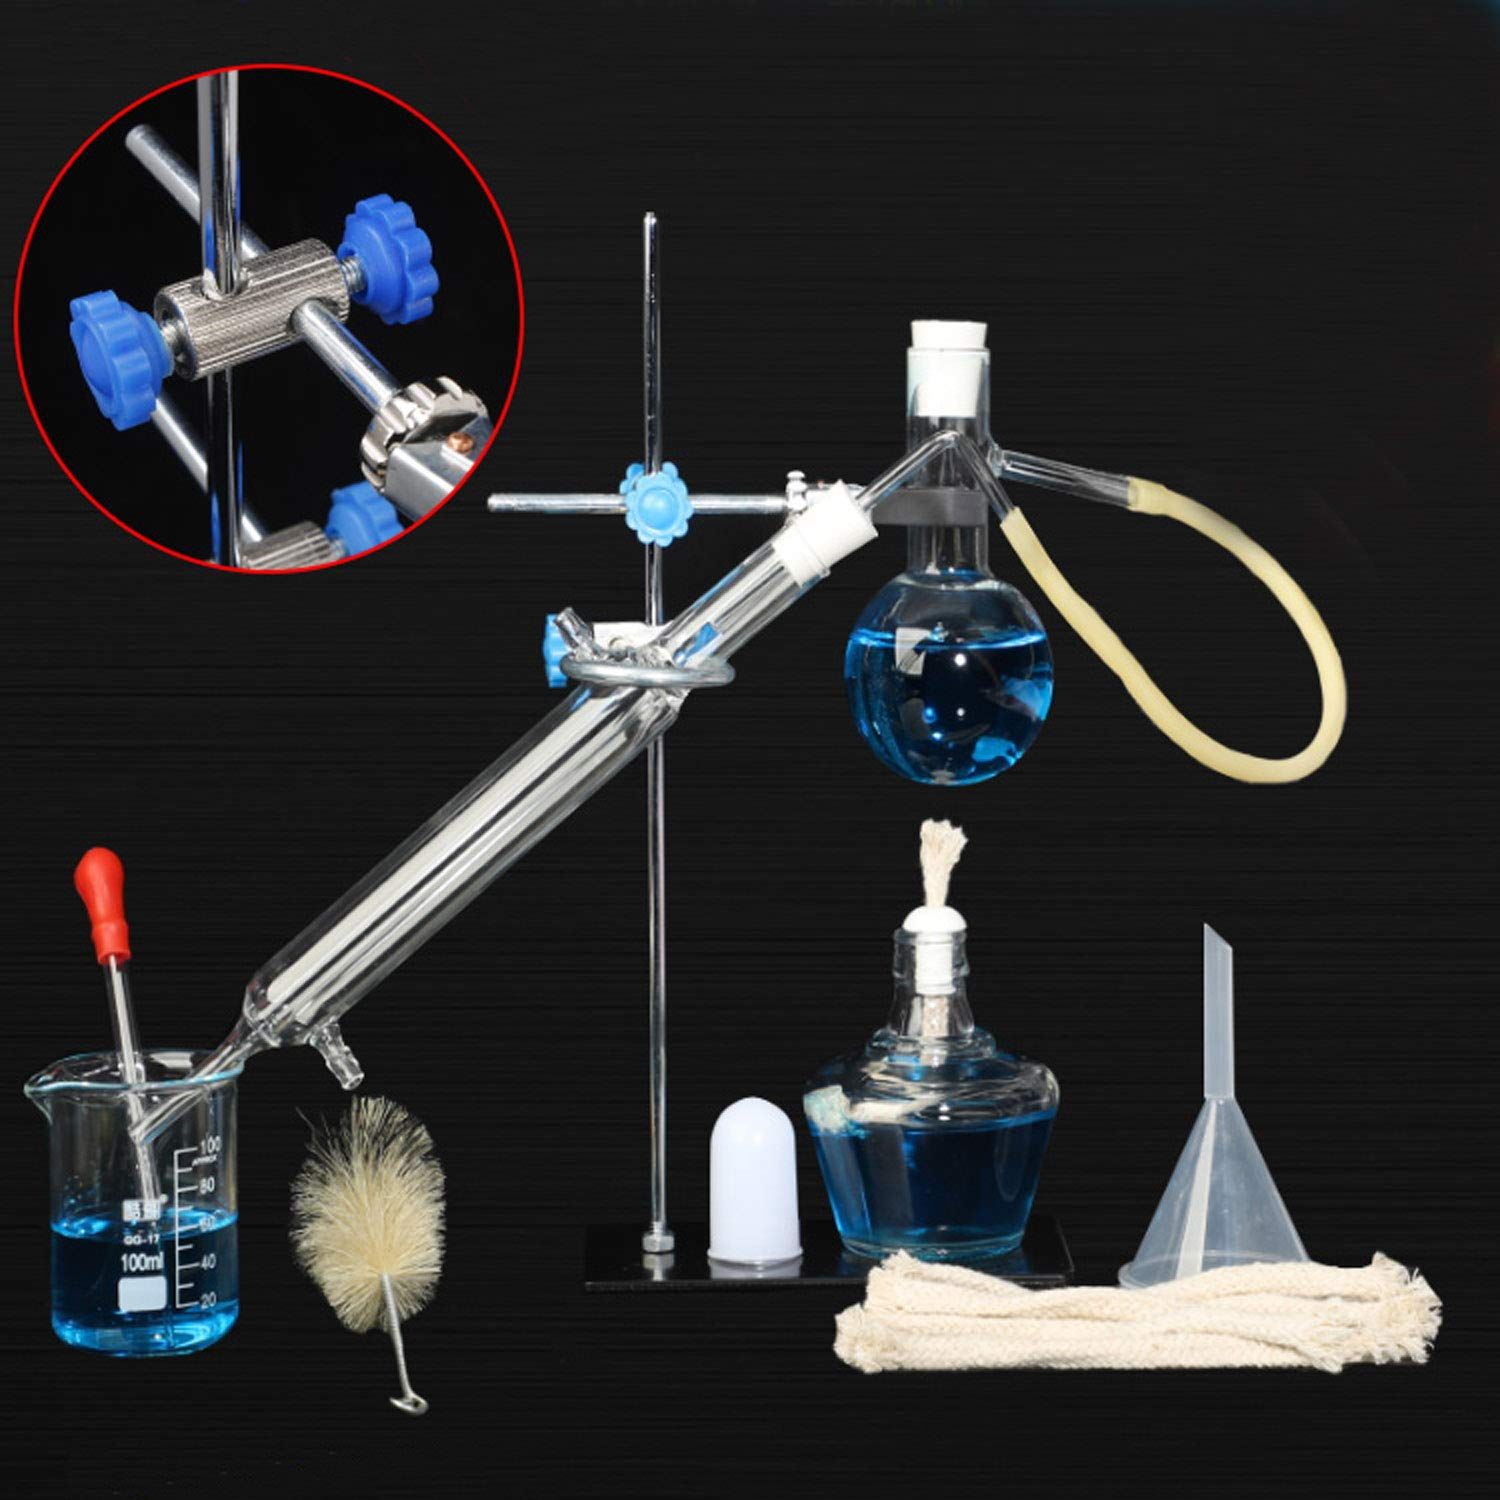 Distillation Apparatus For Organic Chemistry Lab Glassware Set Steam Distillation Apparatus Essential Oil Extraction Assembly Making Distilled Water Processing Extraction Purity In The Laboratory Amazon Com Industrial Scientific